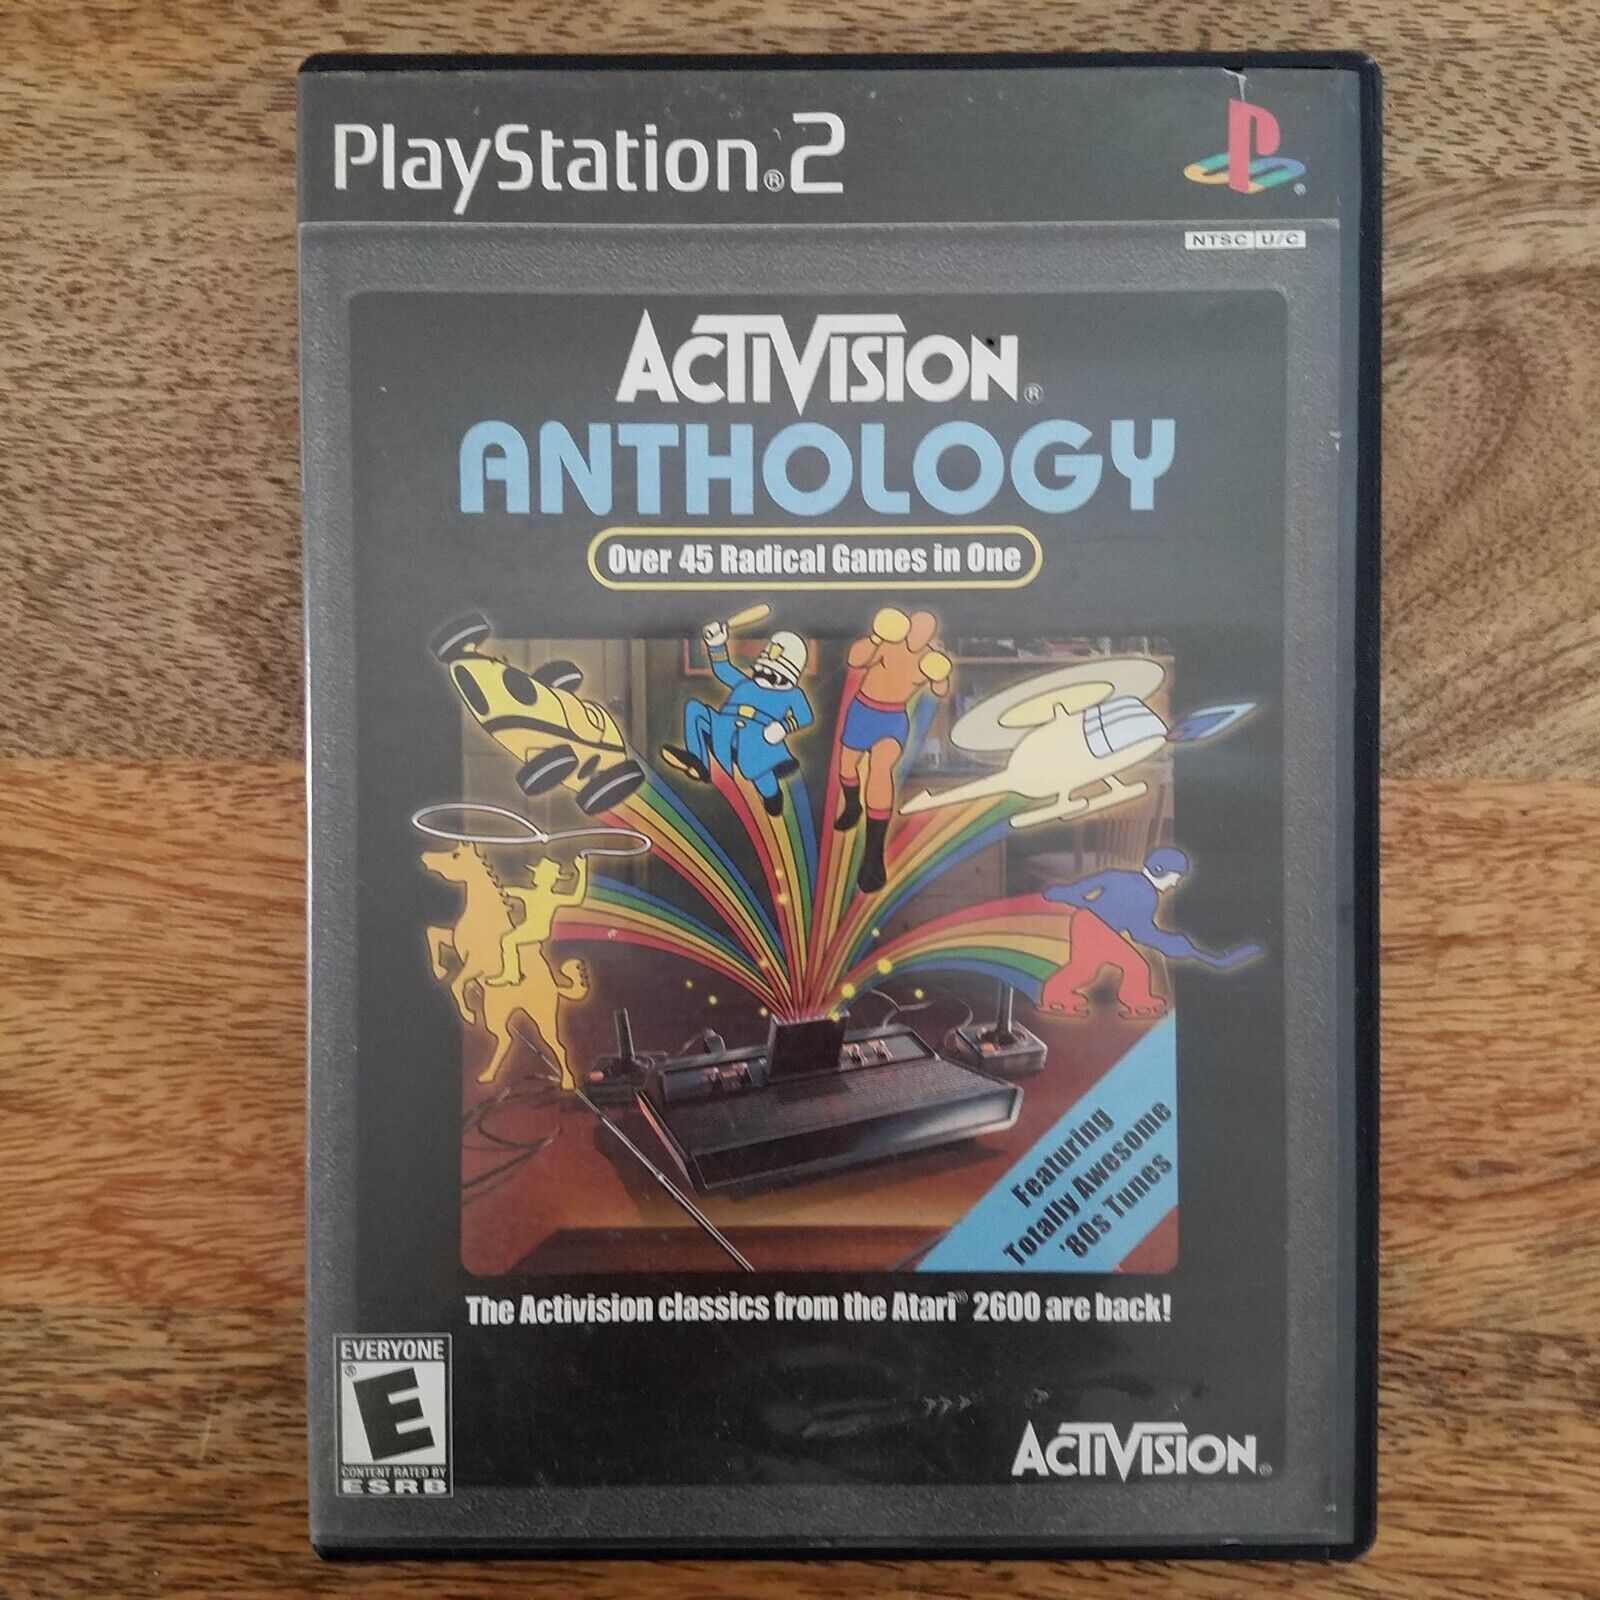 Activision Anthology Sony PlayStation 2 Video Game PS2 2002 45 Games 80 s RARE - $13.99